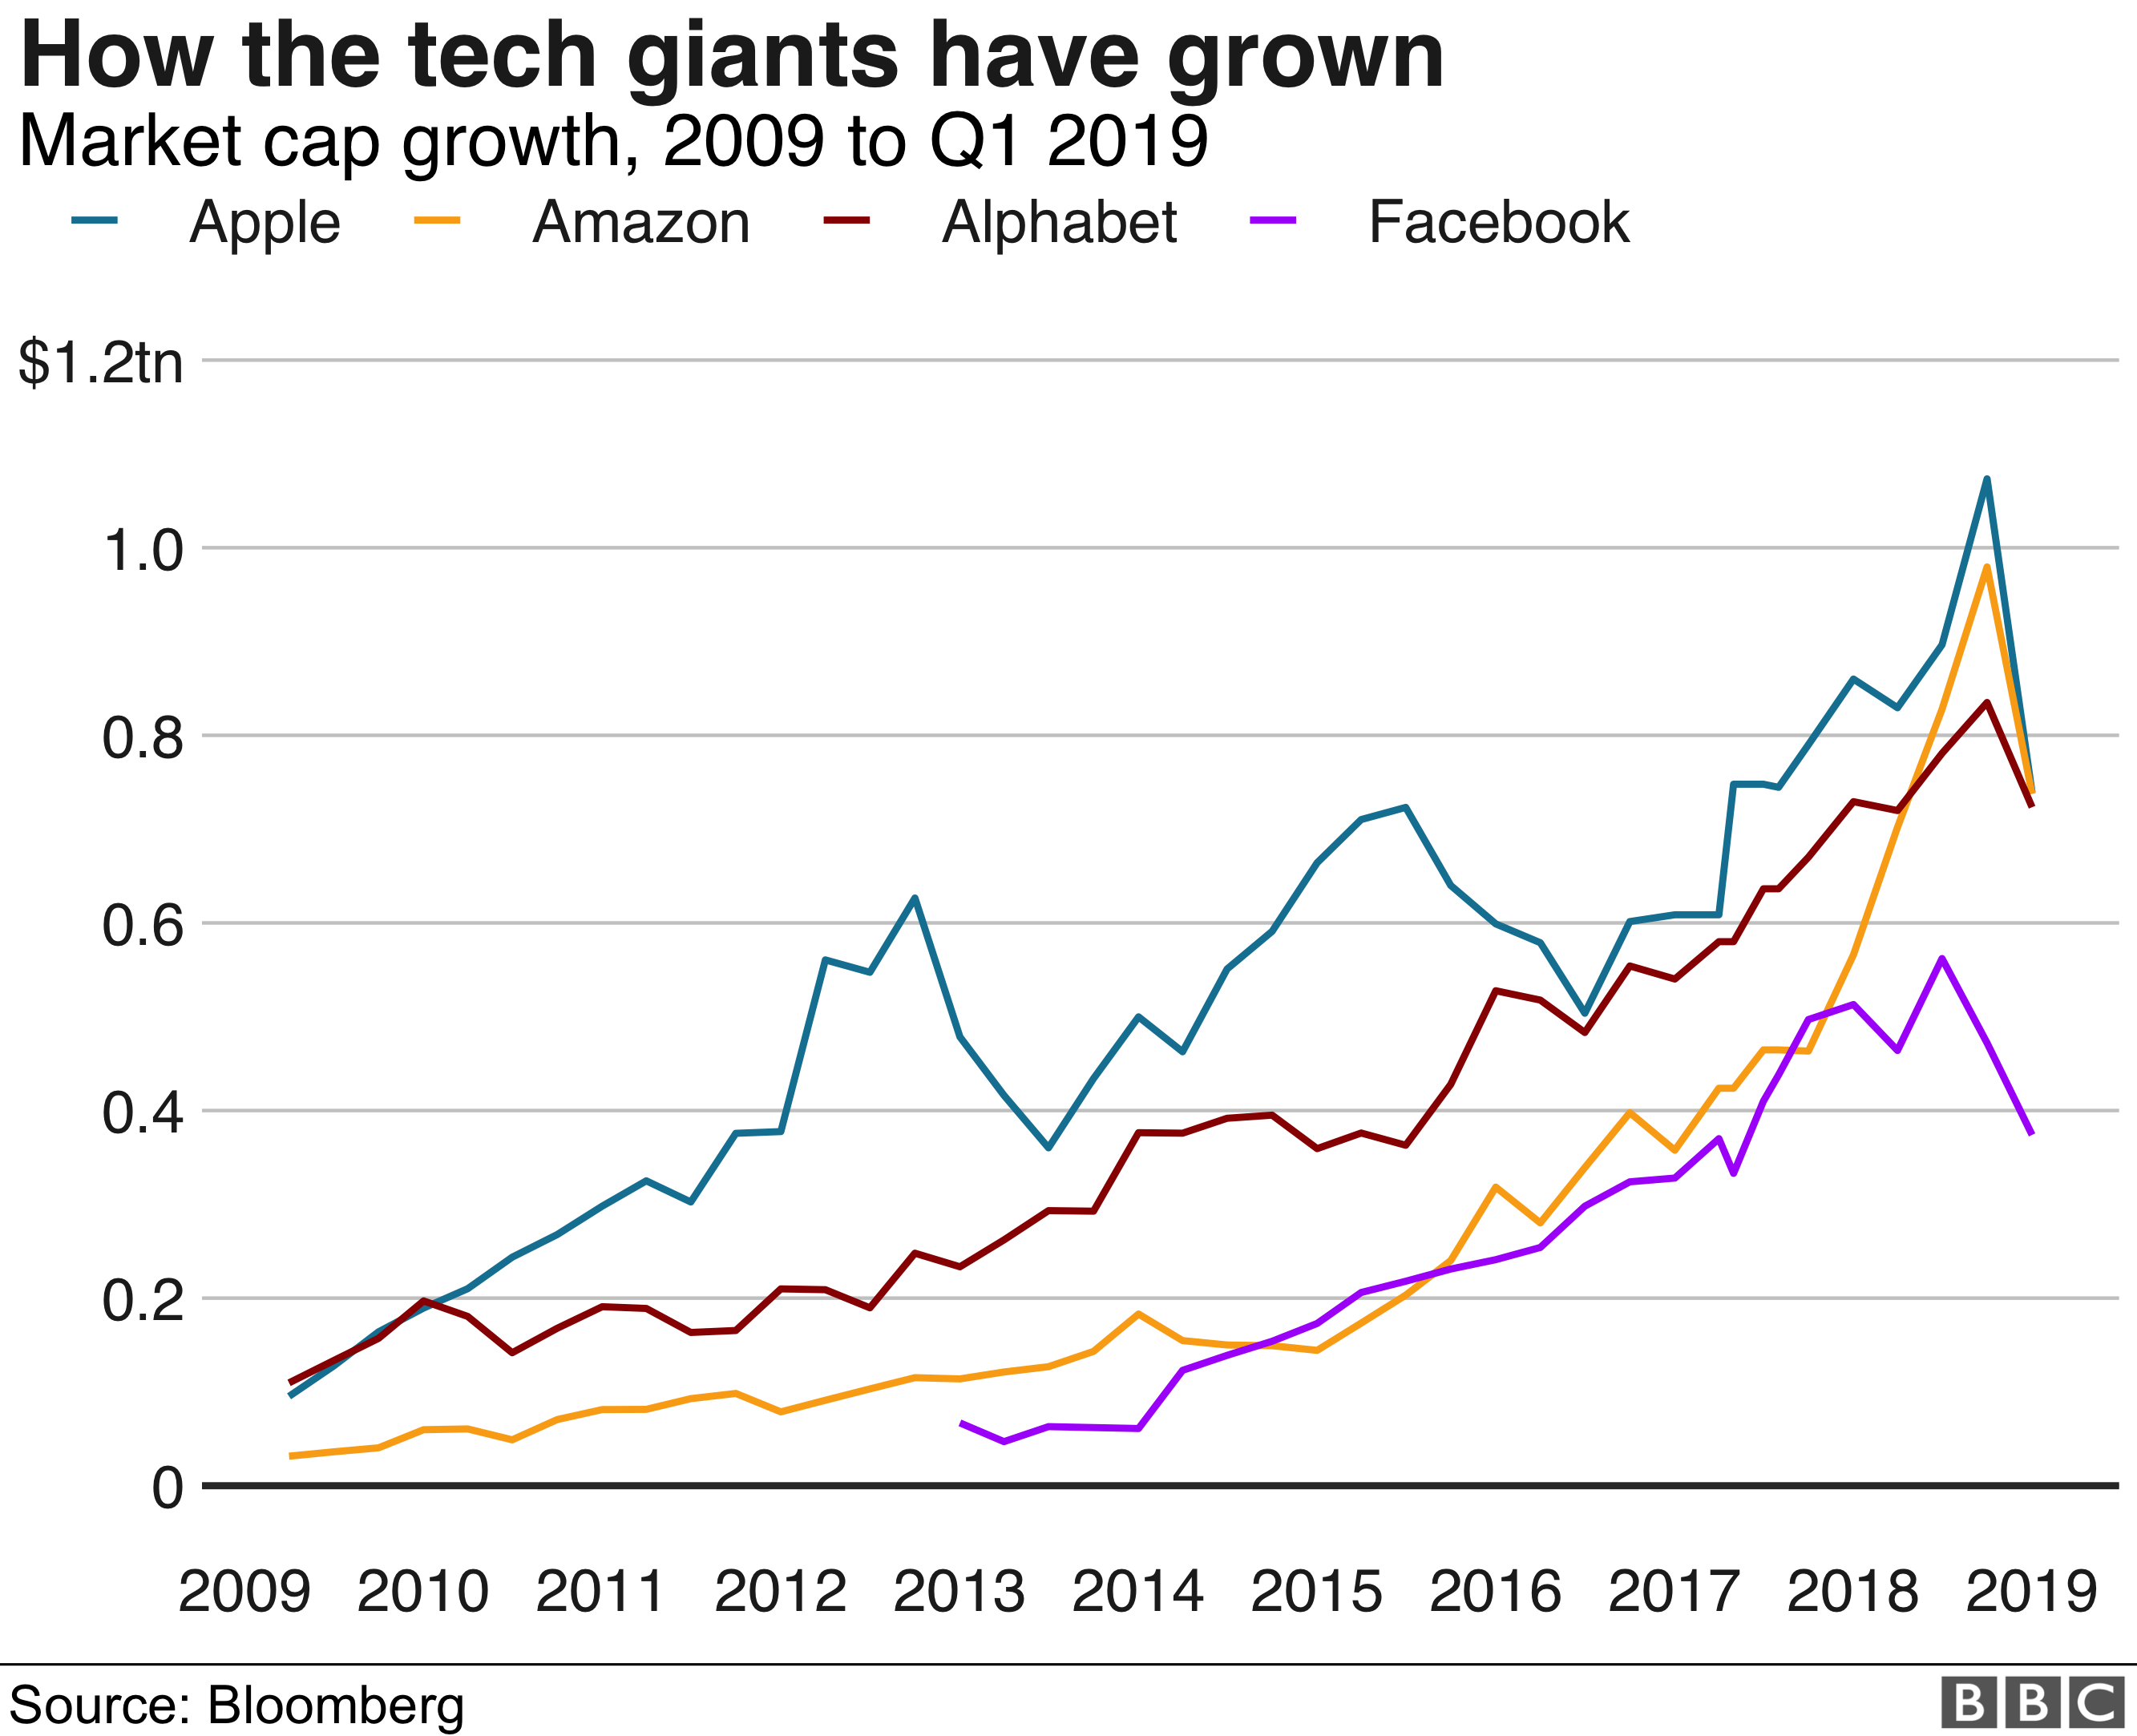 Chart showing market cap growth of Amazon, Google, Apple, Facebook